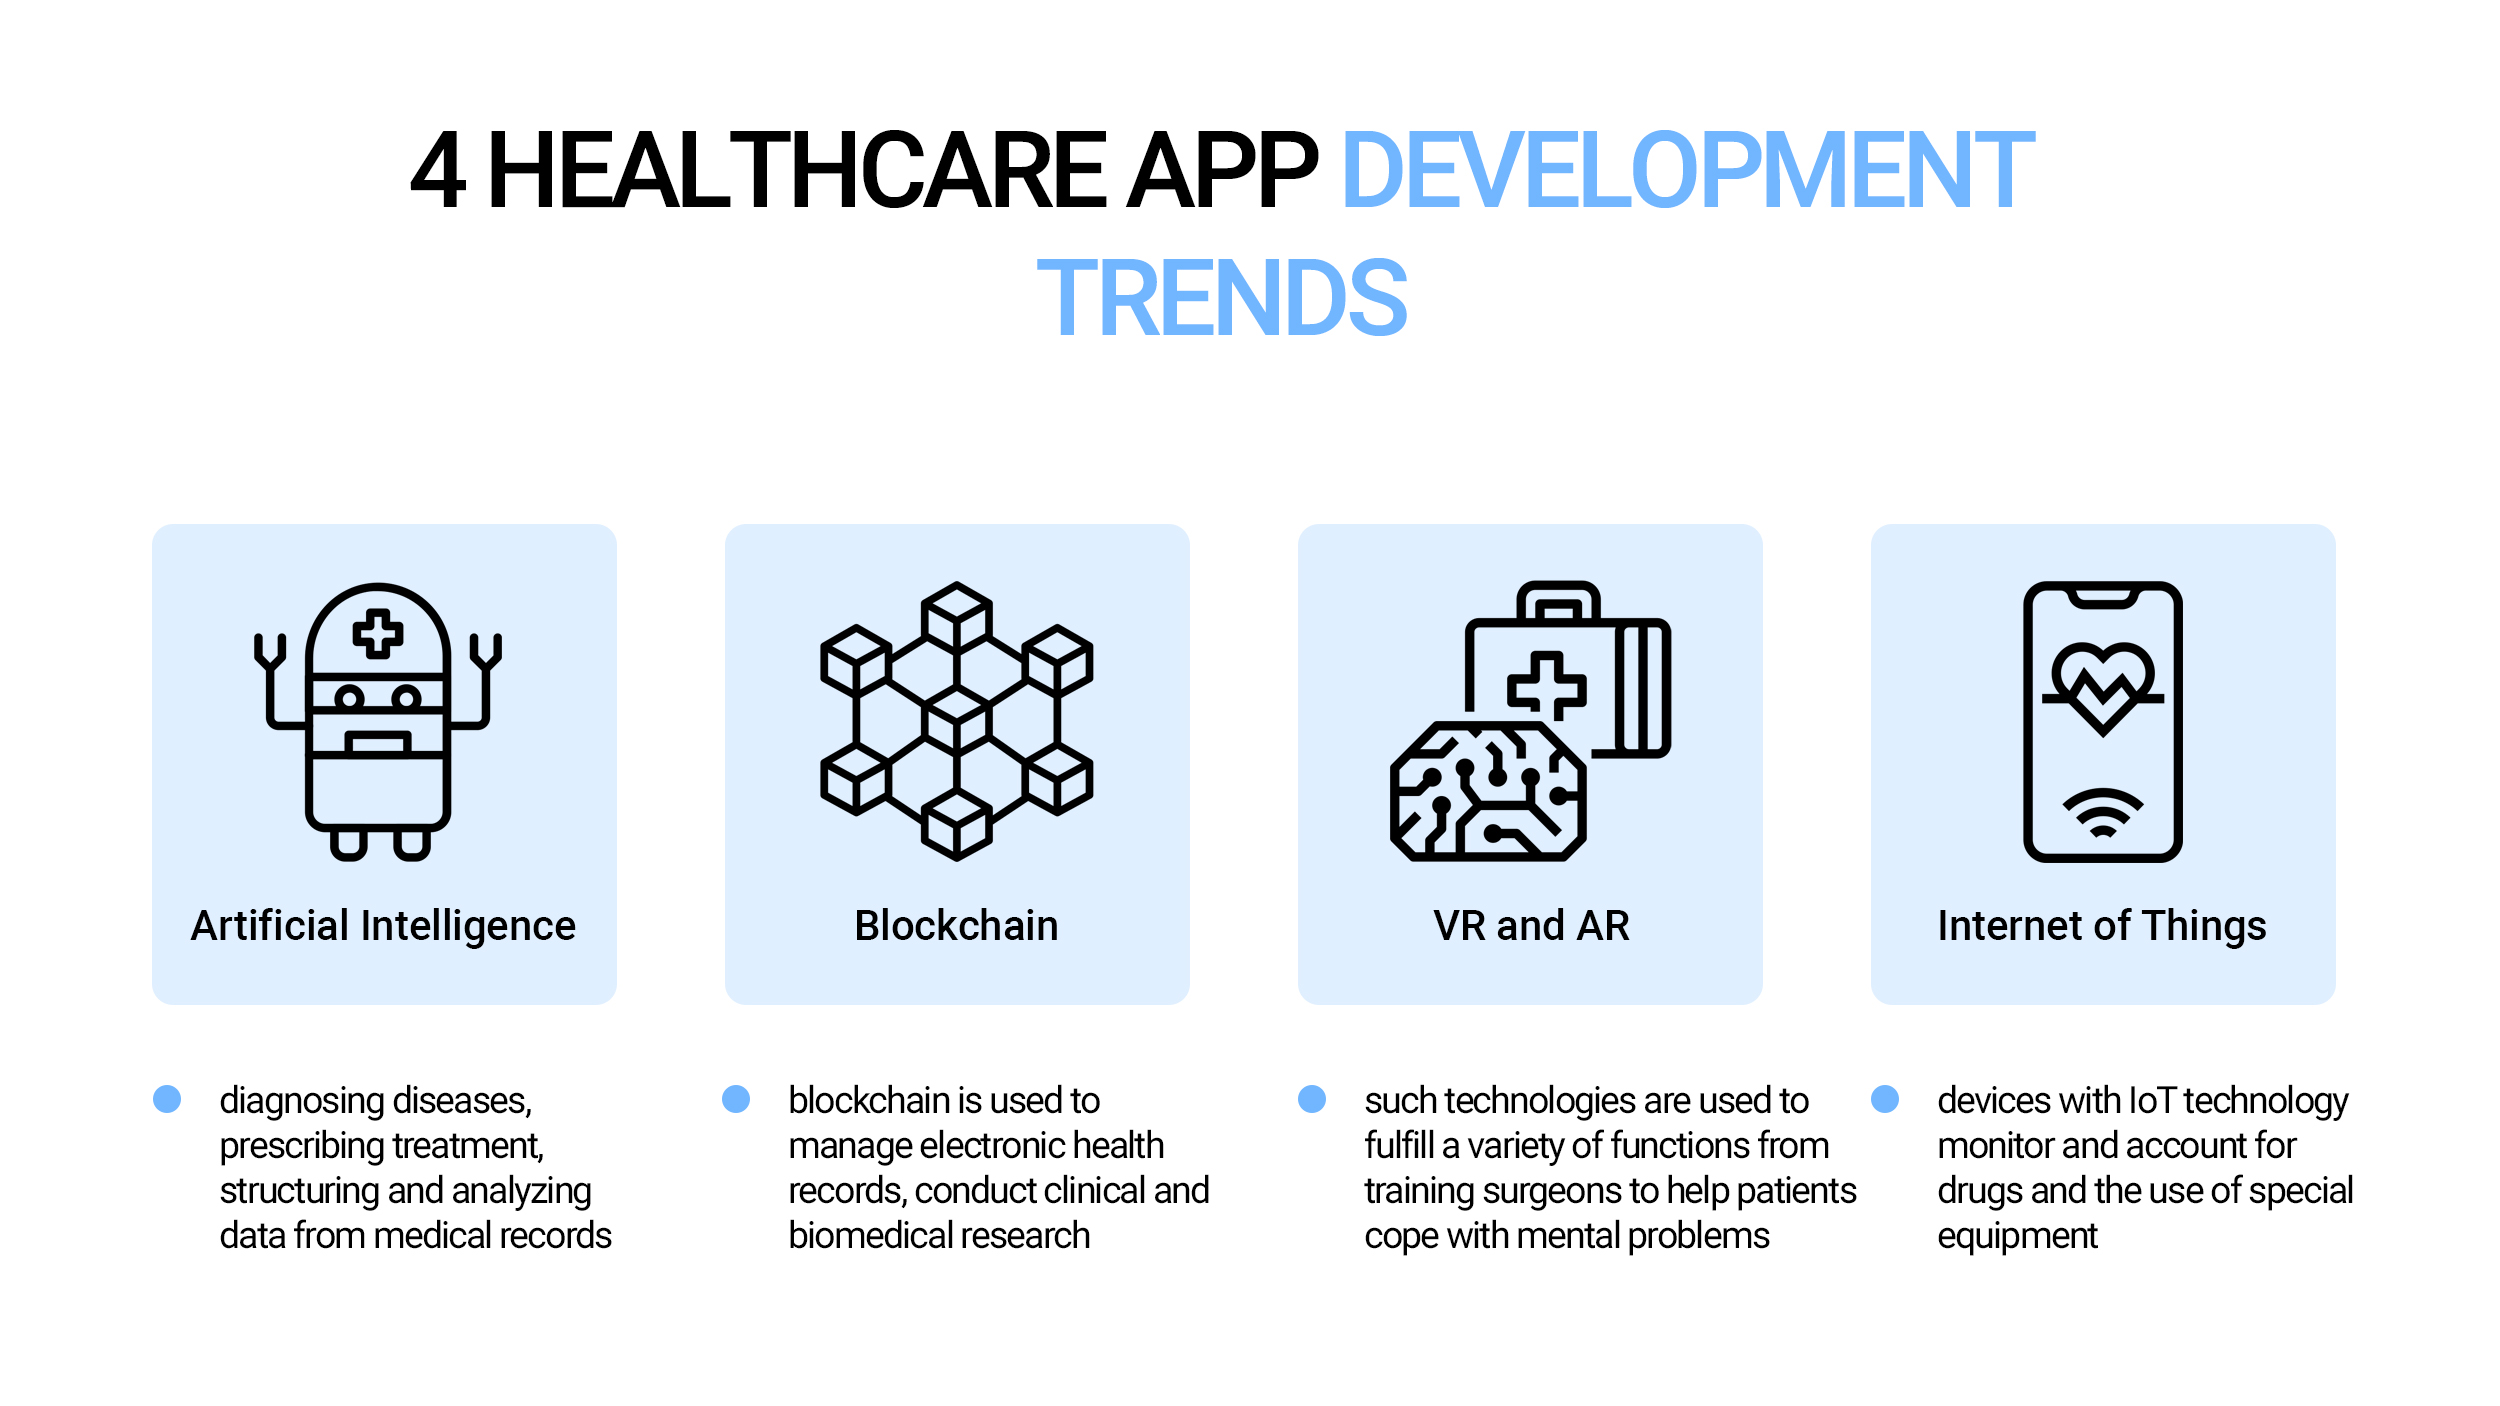 4 Healthcare App Development Trends